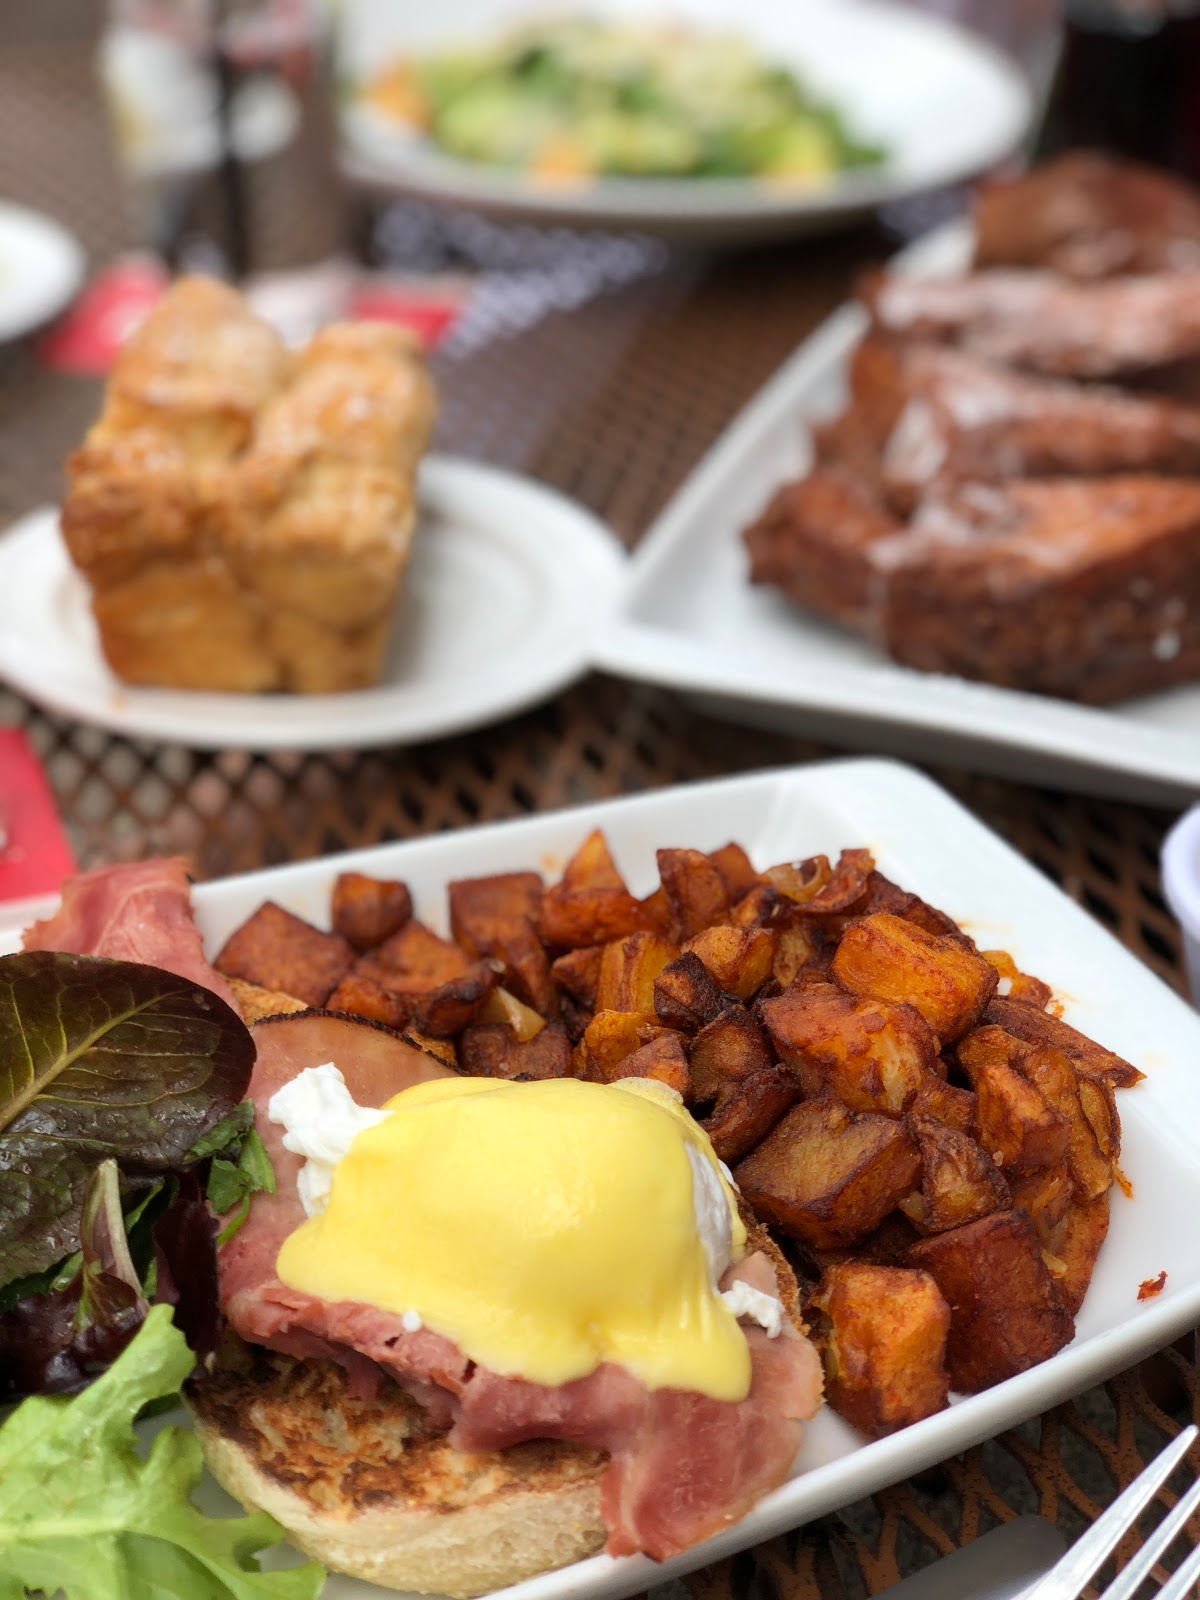 Brunch-Stephanies-Newbury-Street-Boston-Food-Blog